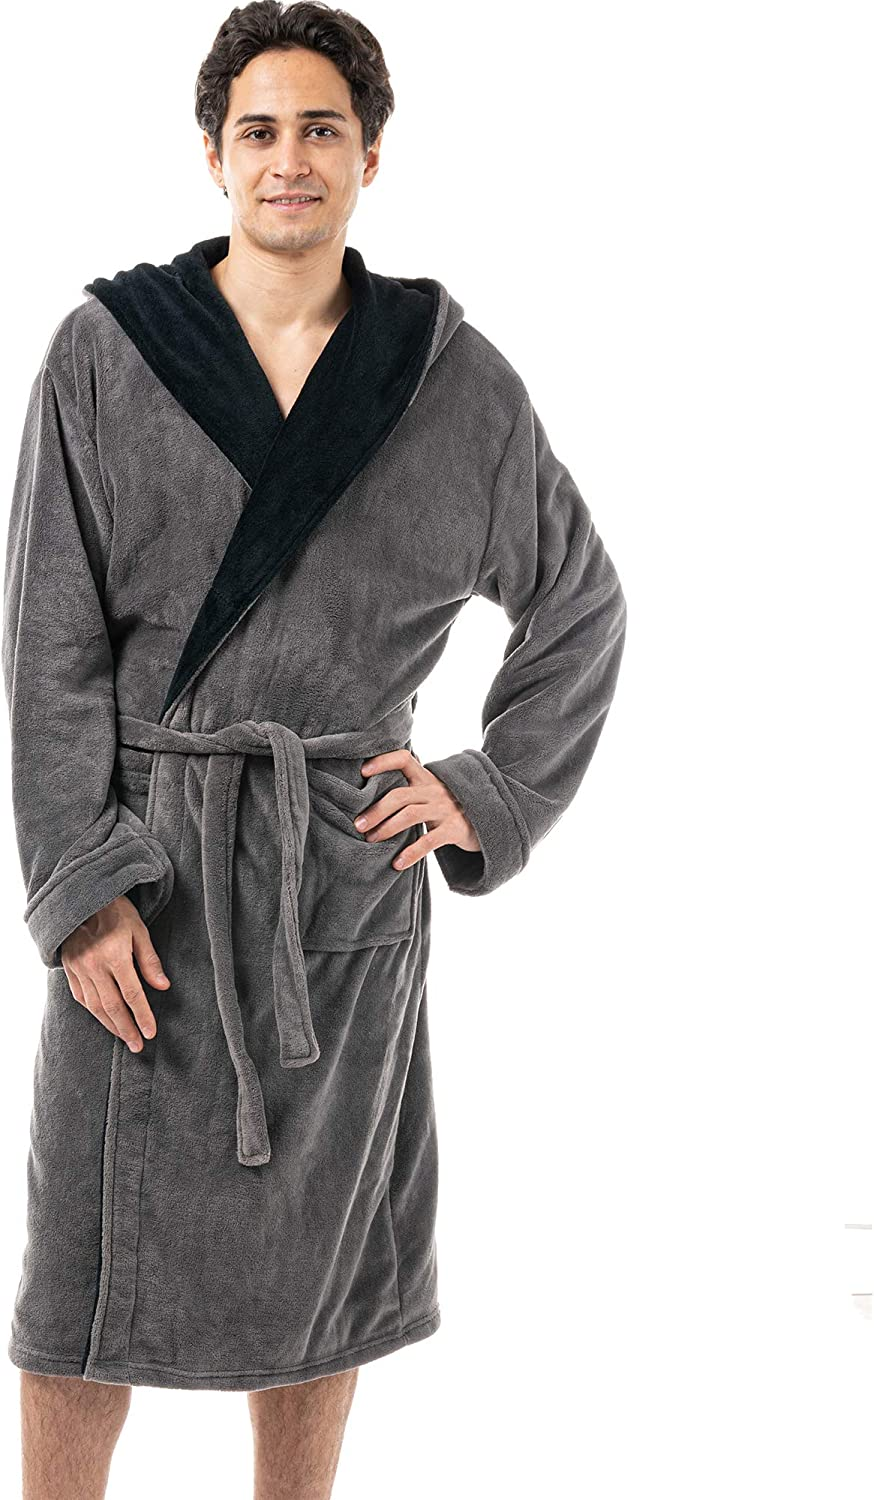 Men's Soft Warm Fleece Plush Robe and Hood High quality shopping Lengt with Knee Full